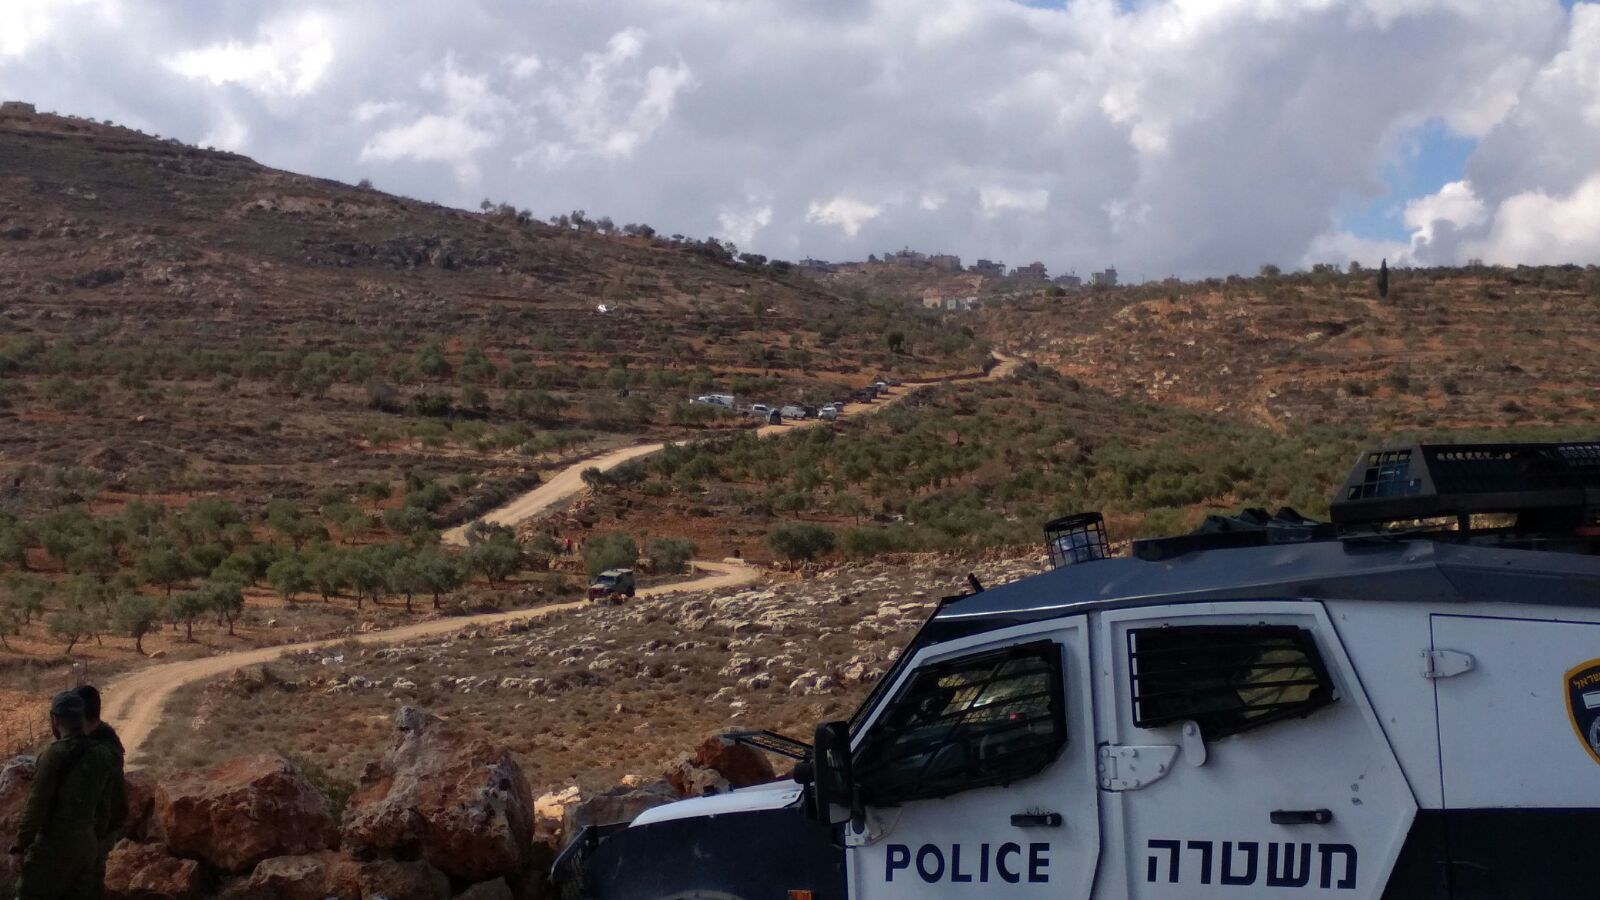 Palestinian shot dead by Israeli settler in West Bank